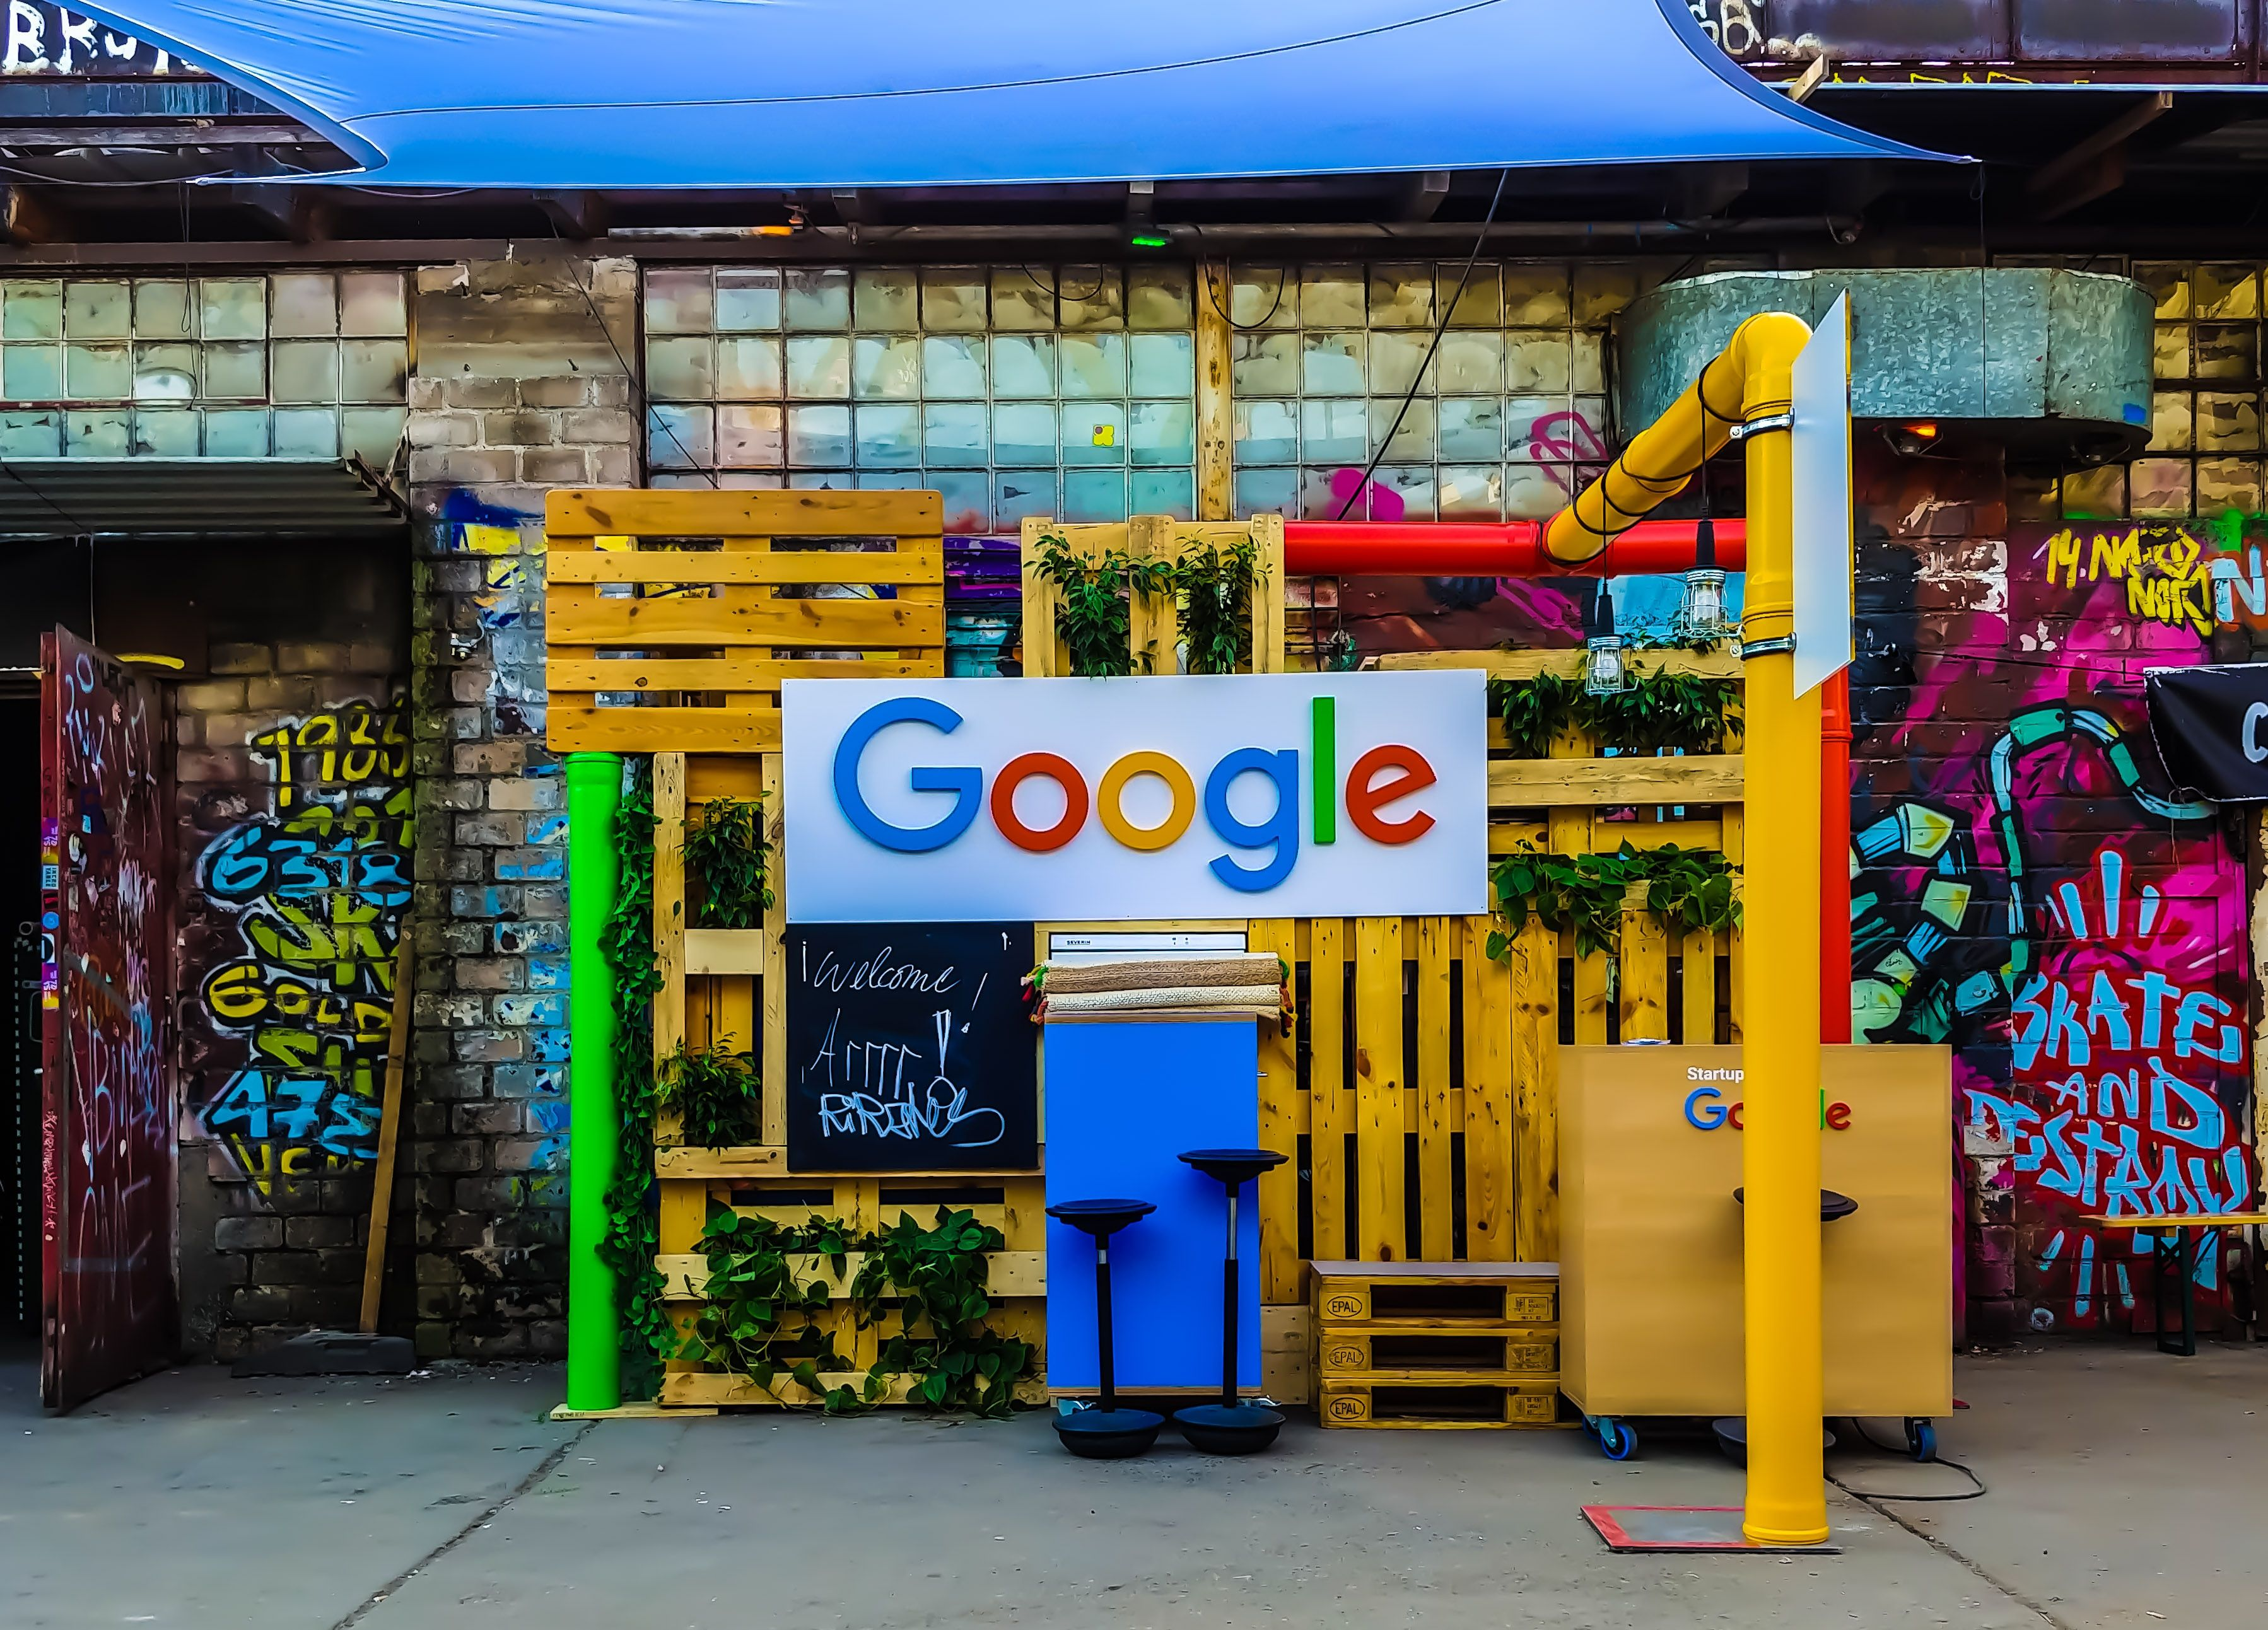 Google logo with busy bright background and graffiti on street